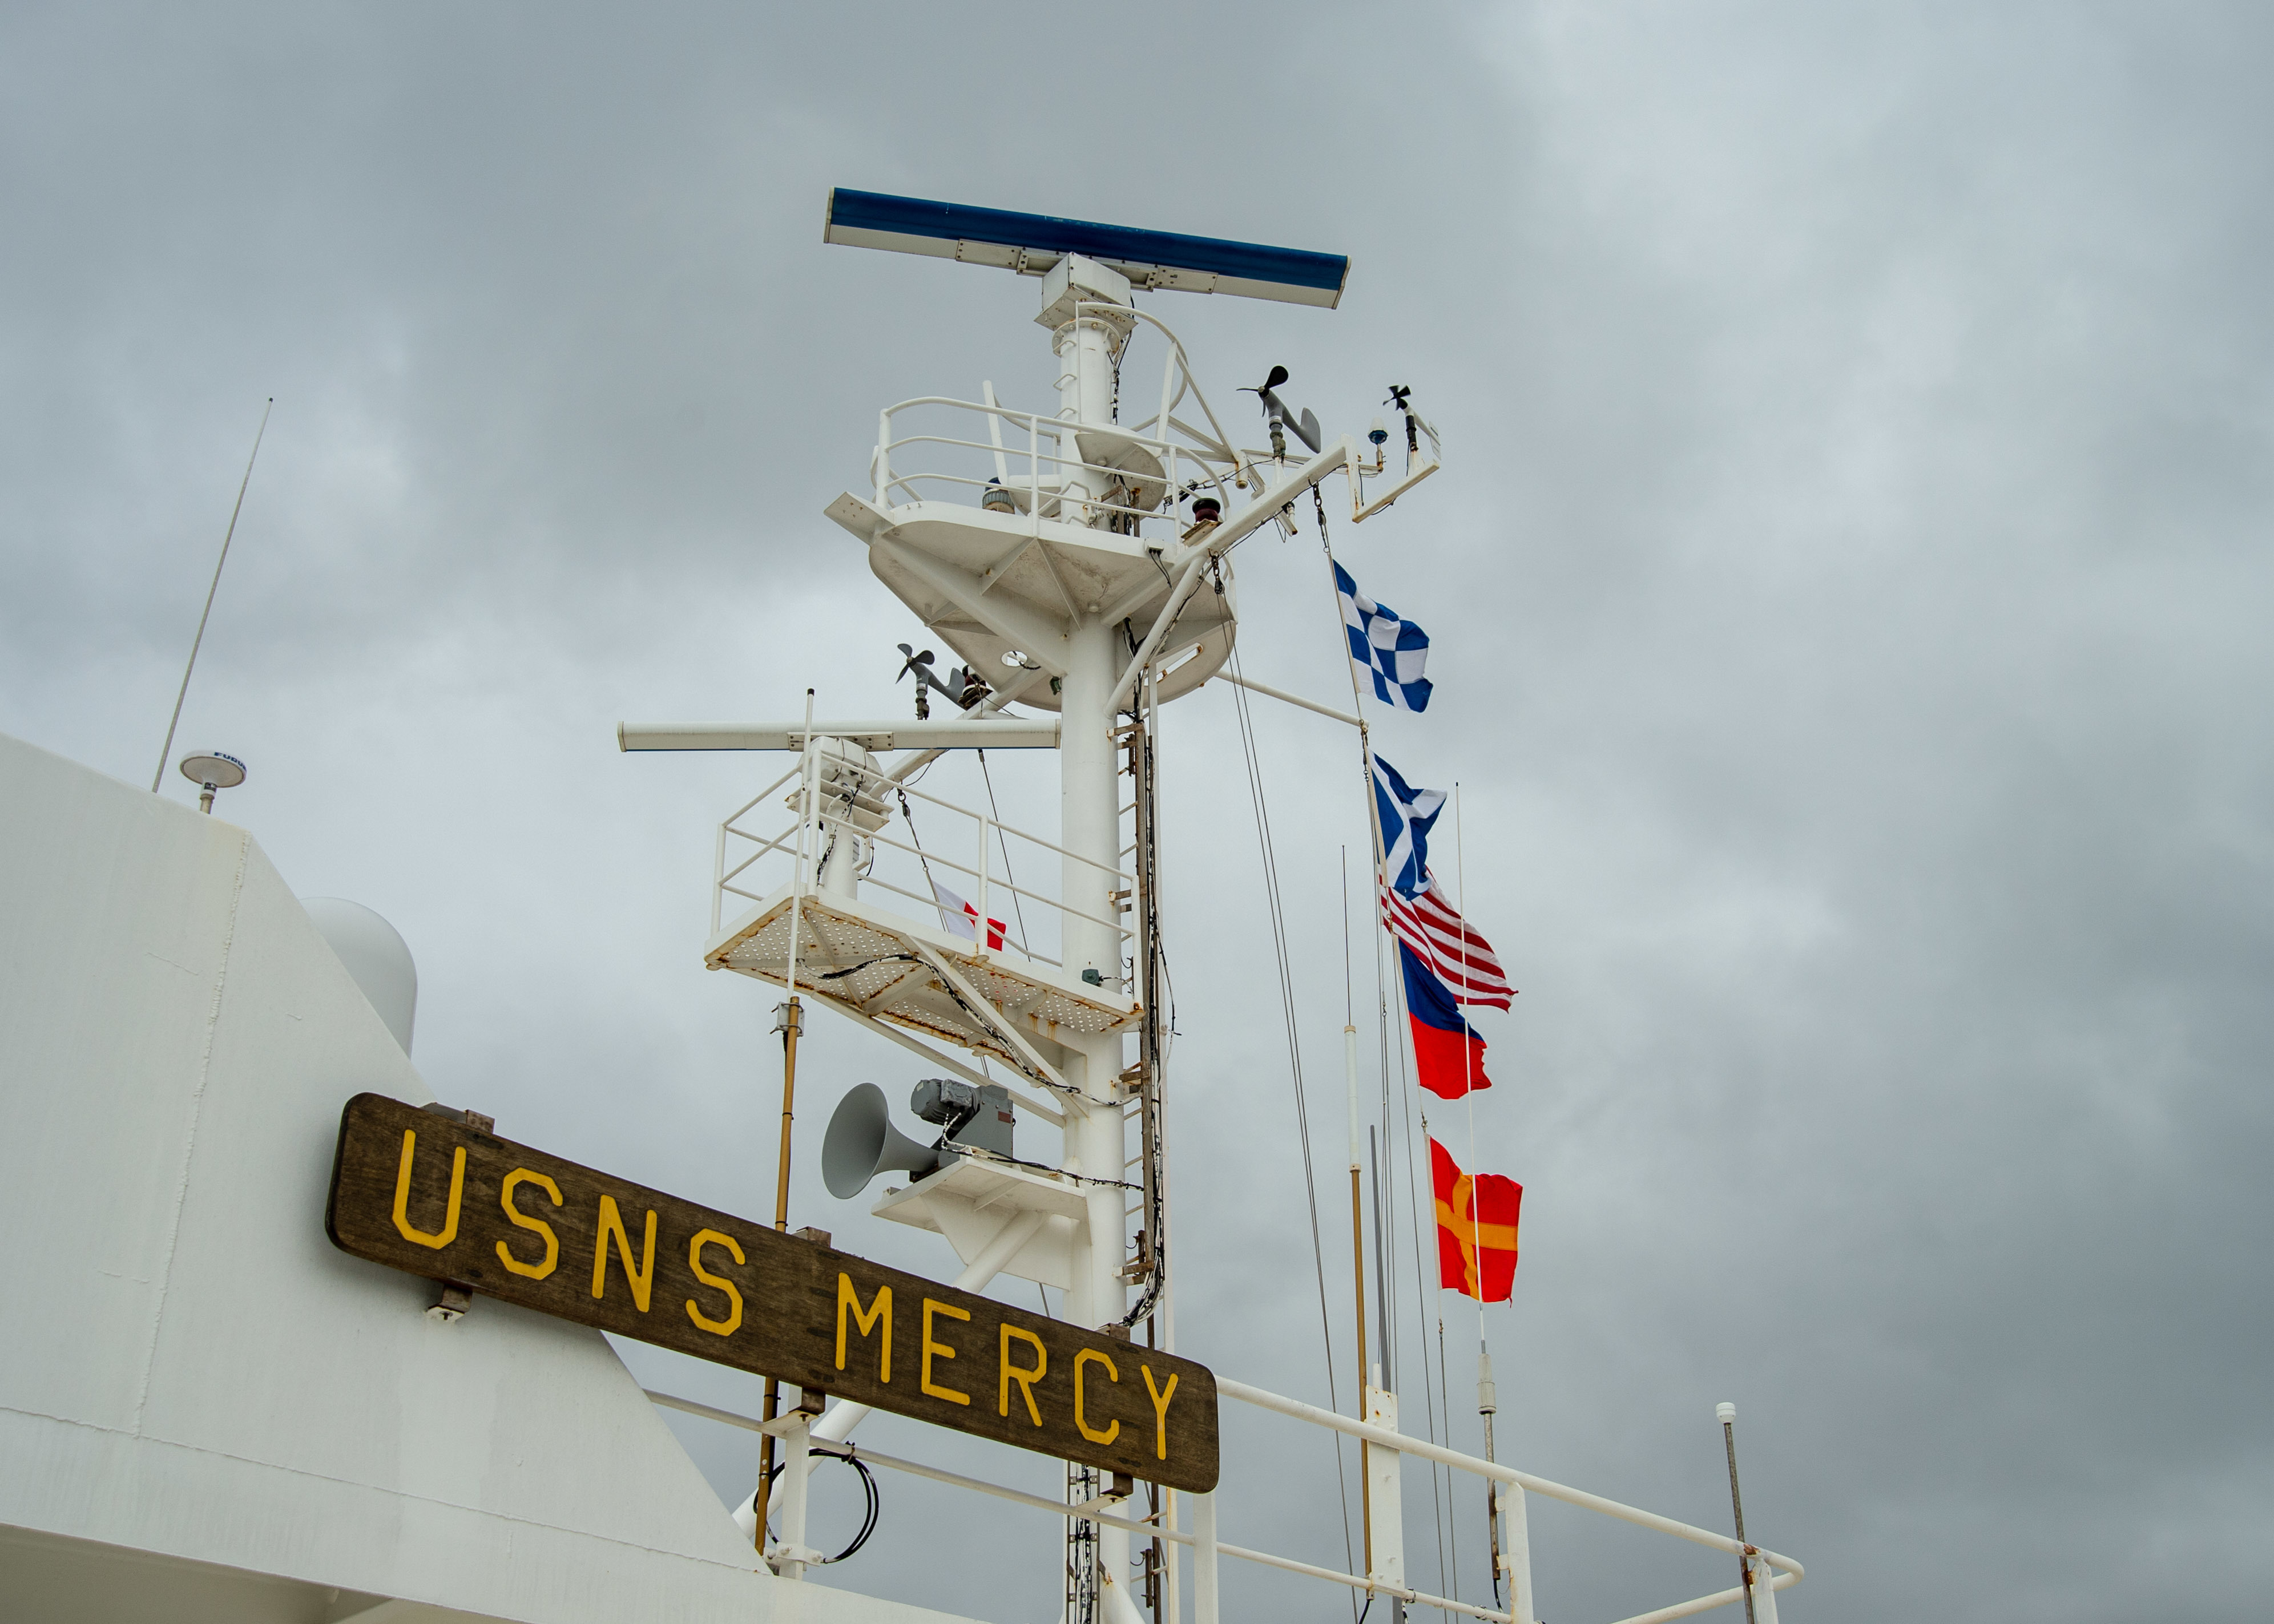 A photo of the mast of the Military Sealift Command hospital ship USNS Mercy (T-AH 19) with underway pennants.